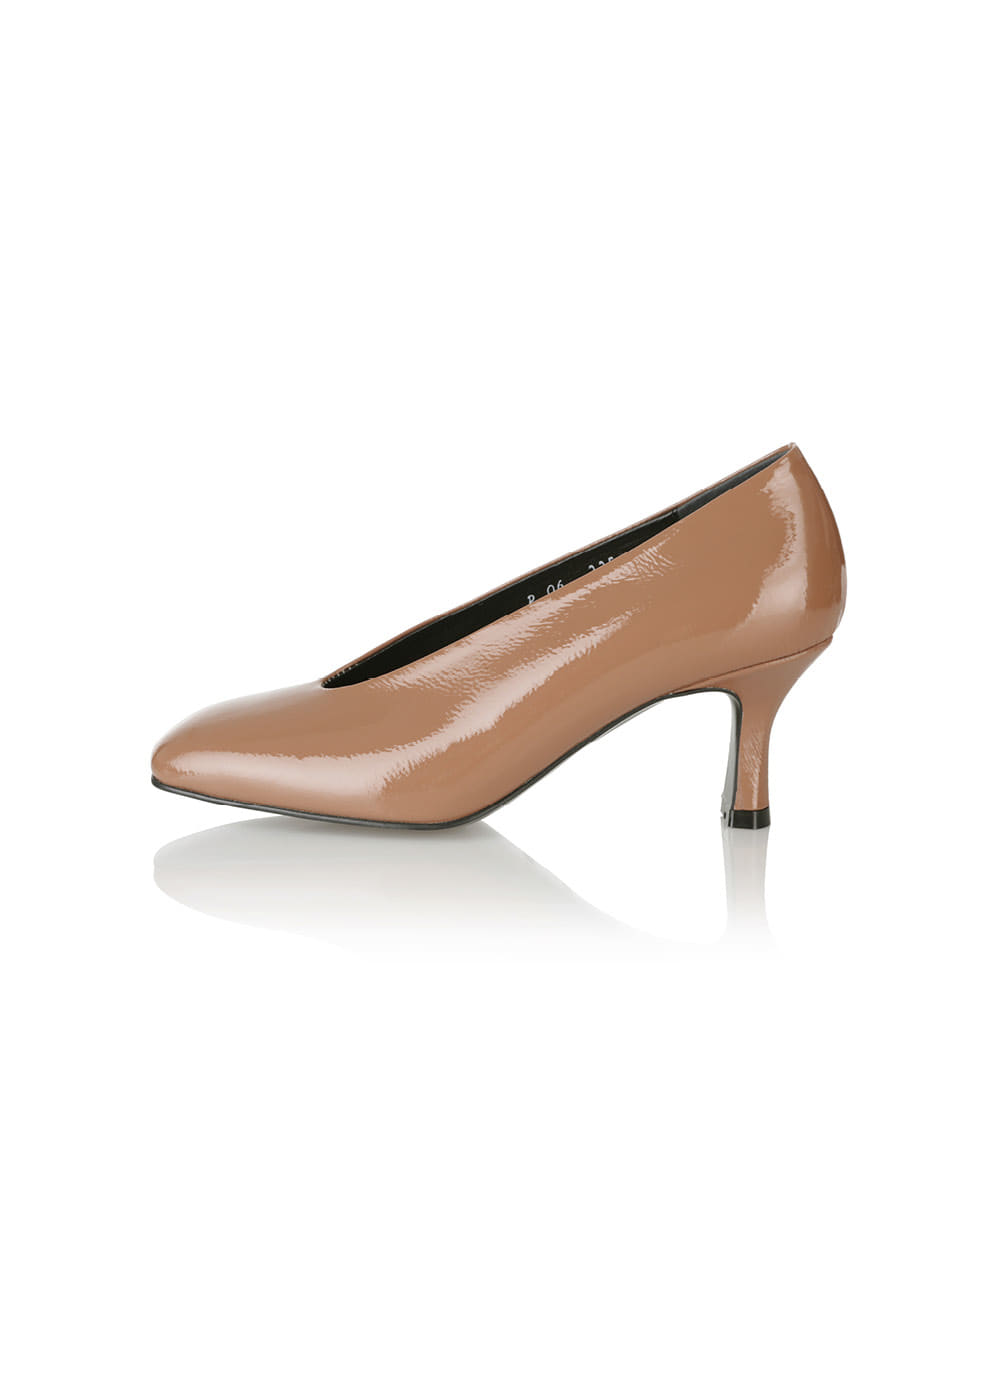 Dazzle Scent Pumps / YY8A-P08 / 6 colors